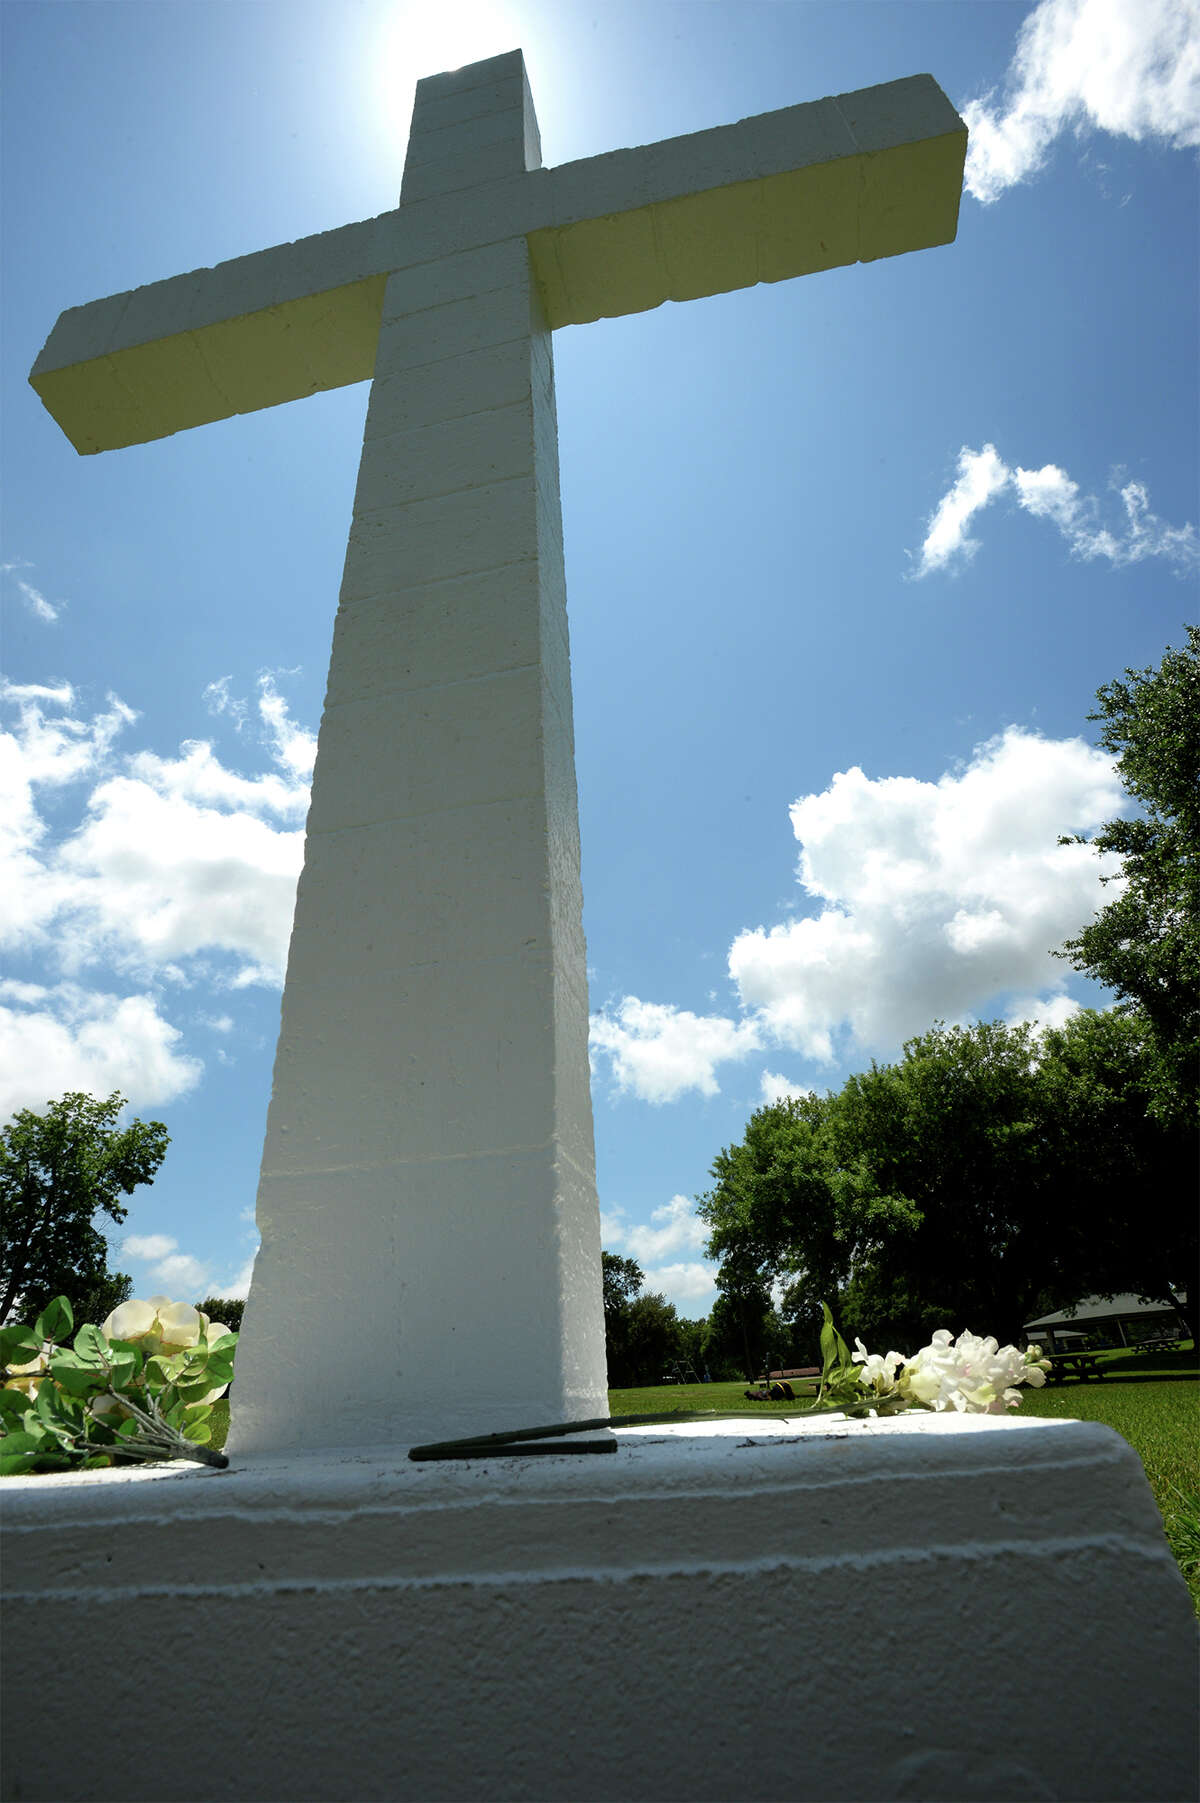 Citing that the public should have a clearer distinction of city property and church property, the Freedom From Religion Foundation is asking the City of Port Neches to fence around the newly sold section of Port Neches park containing a statue of a cross. The cross has been a topic of debate since November when the organization requested its removal on grounds of separation of church and state. Photo taken Monday, May 23, 2016 Guiseppe Barranco/The Enterprise